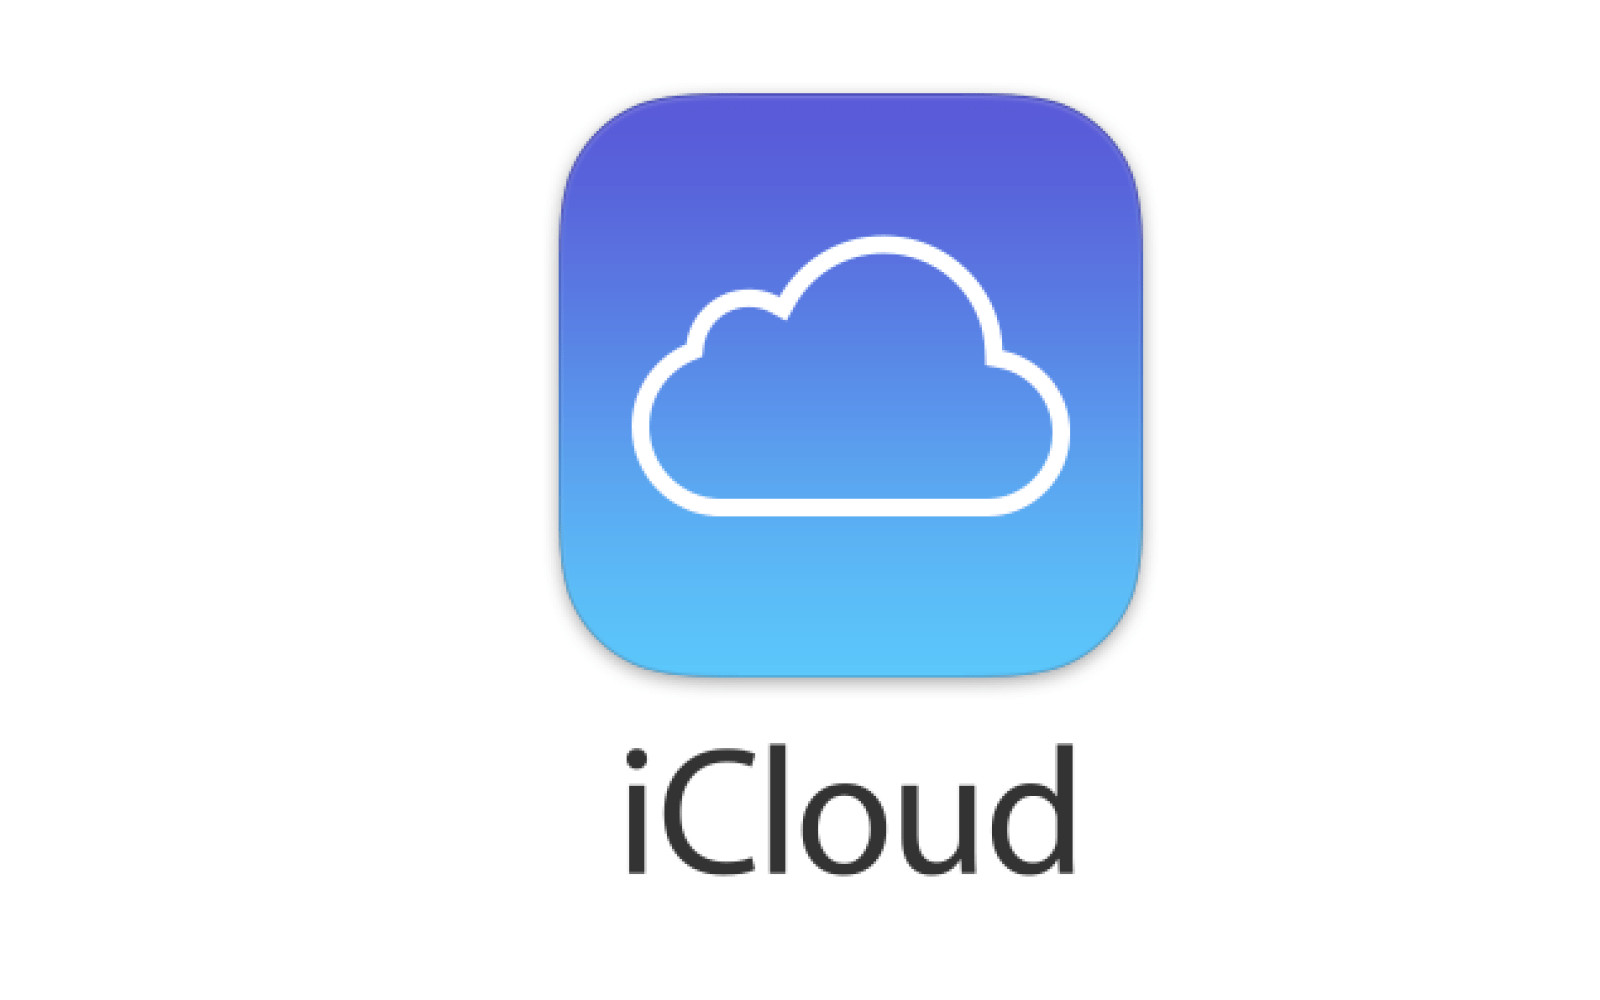 icloud drive mac mail cloud apple pc works check device advantage alternatives gmail take services could fix windows completed safely PNG File